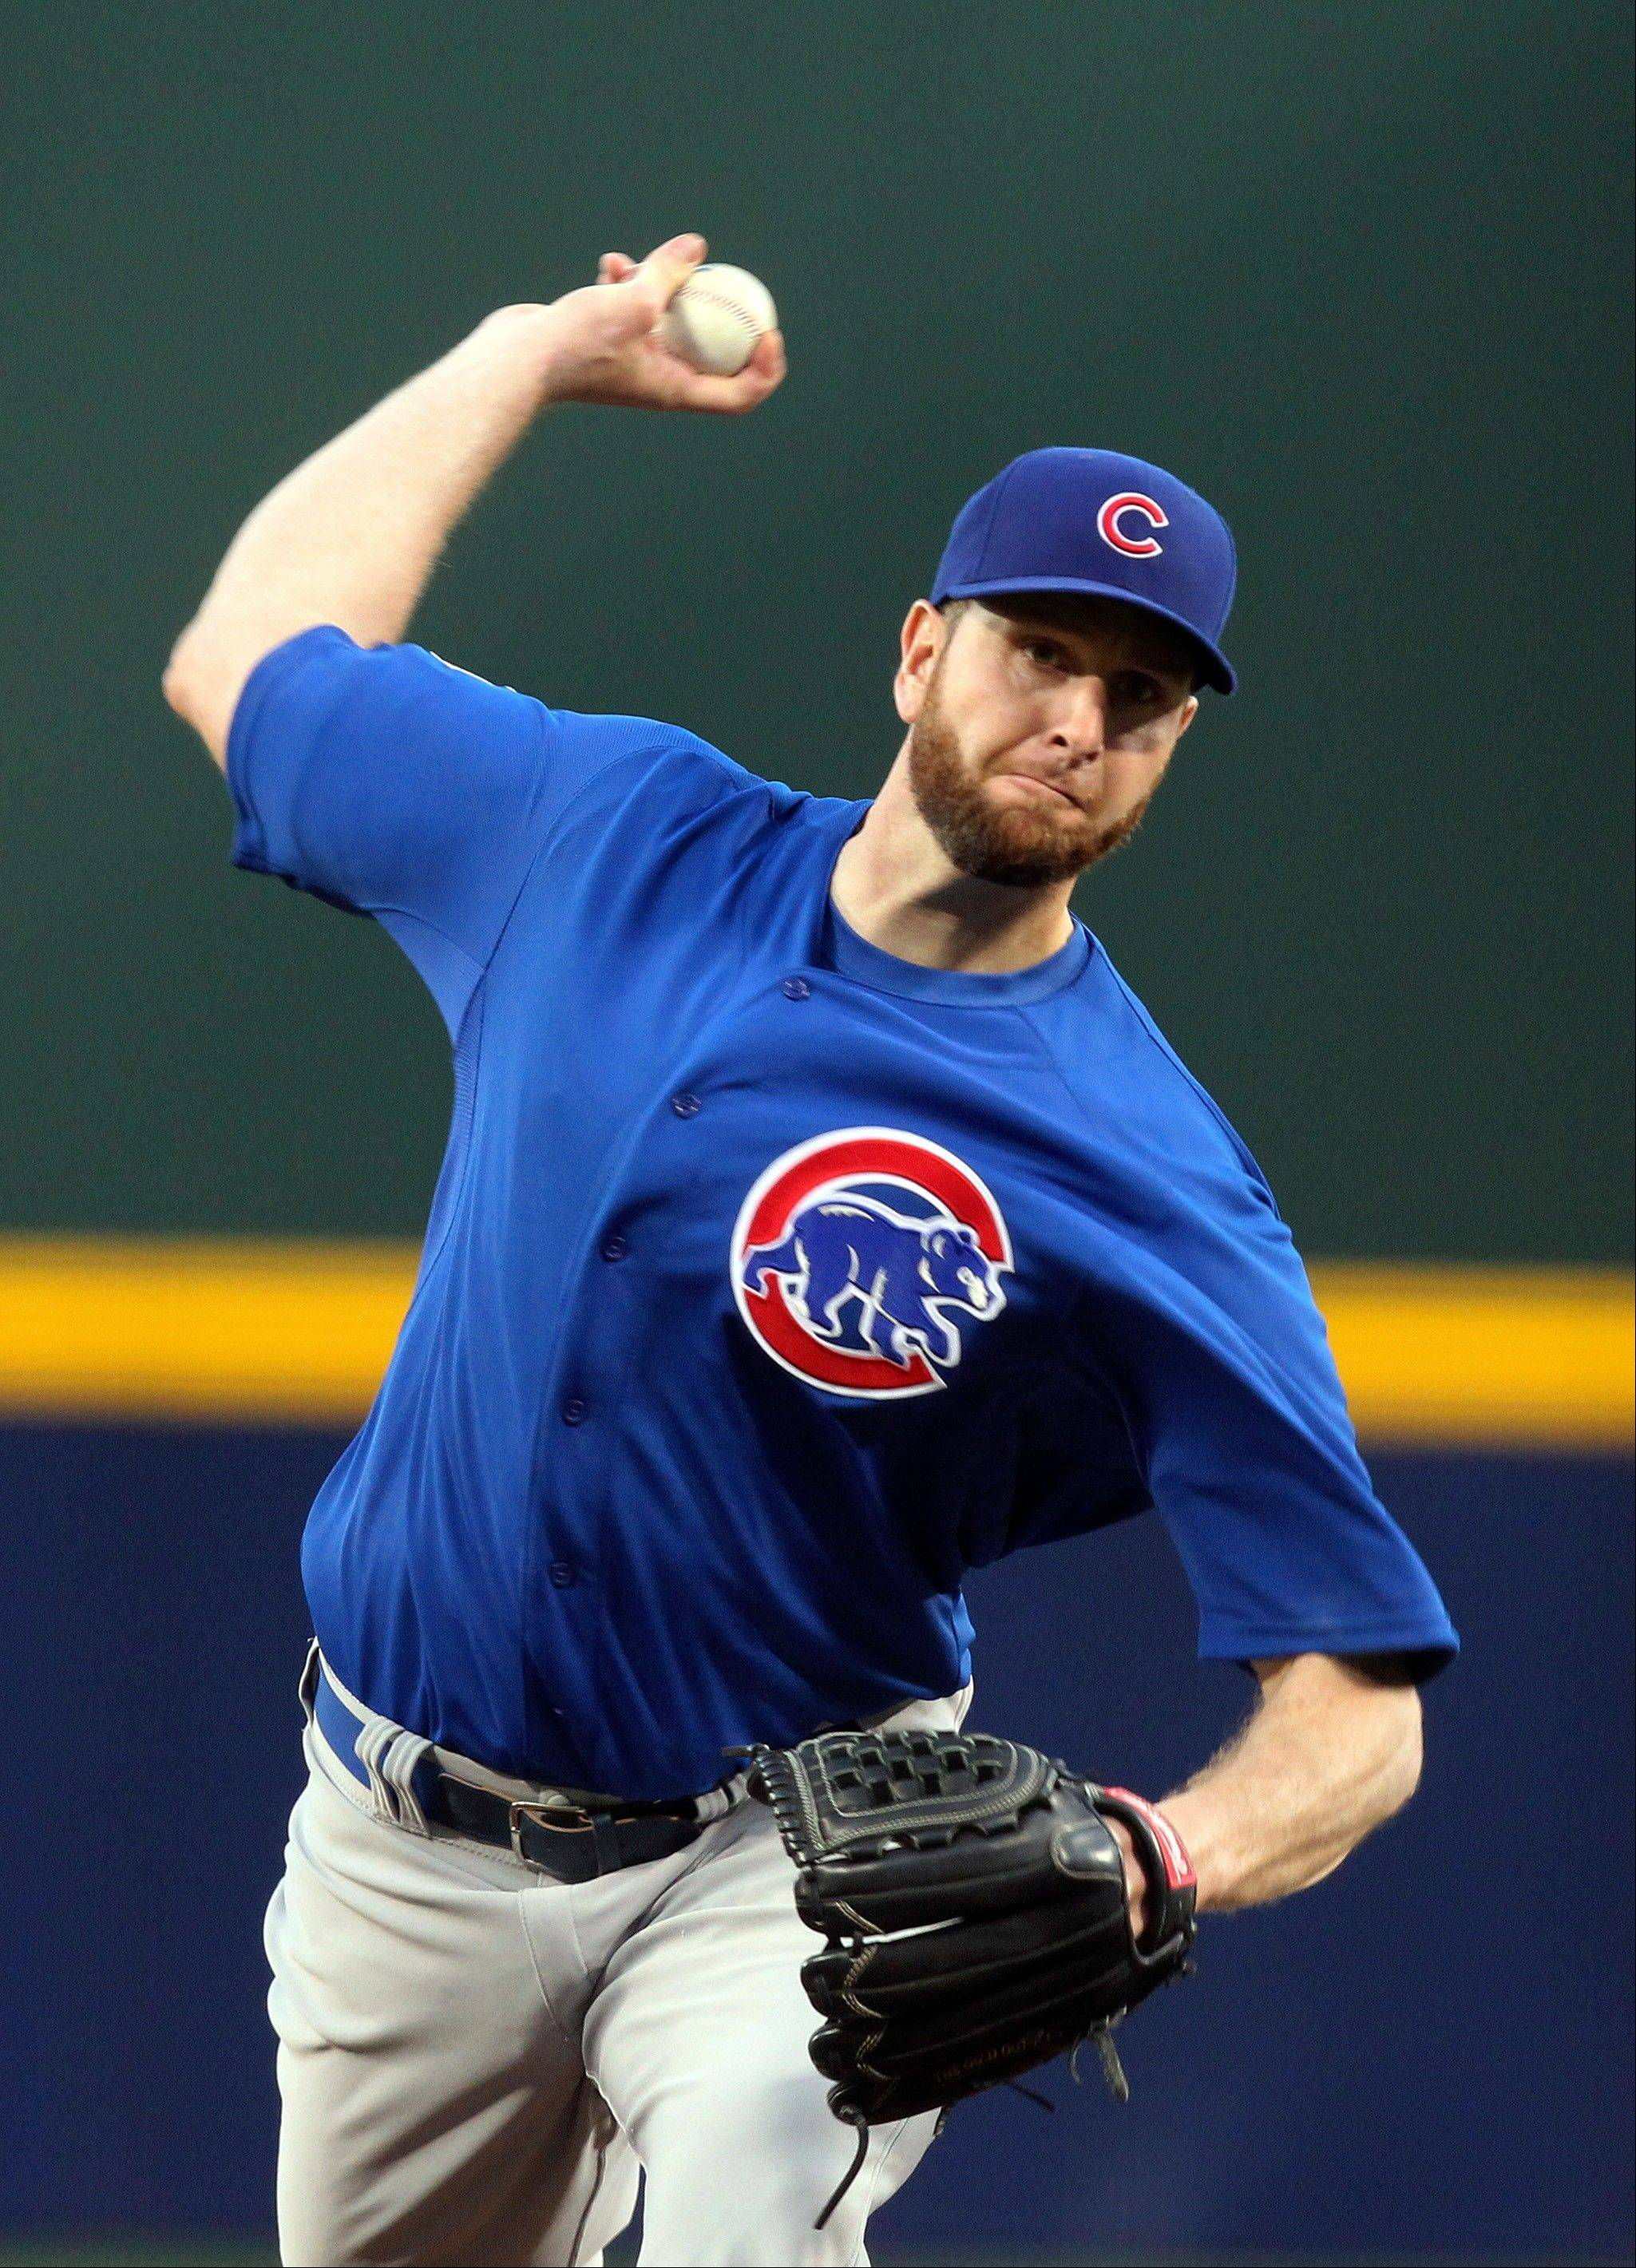 Feldman, Cubs struggle in 4-1 loss to Braves